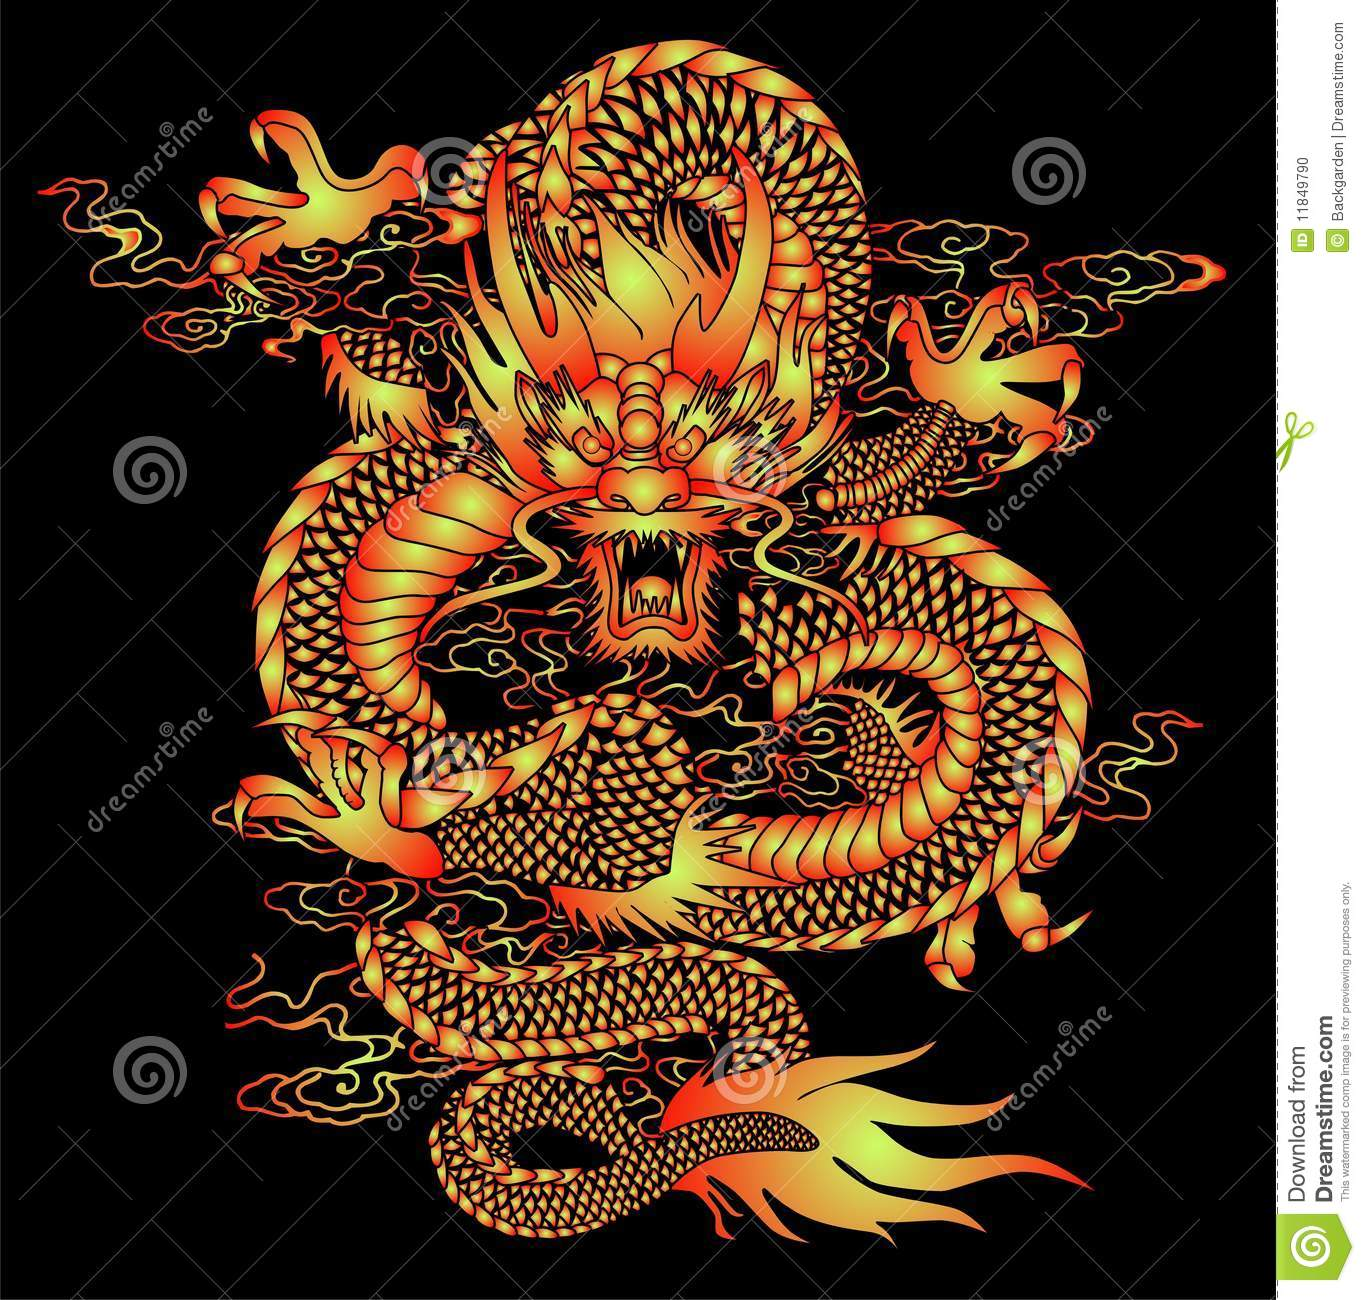 Os X Lion Wallpaper Hd For Iphone Chinese Dragon Pattern Stock Vector Illustration Of